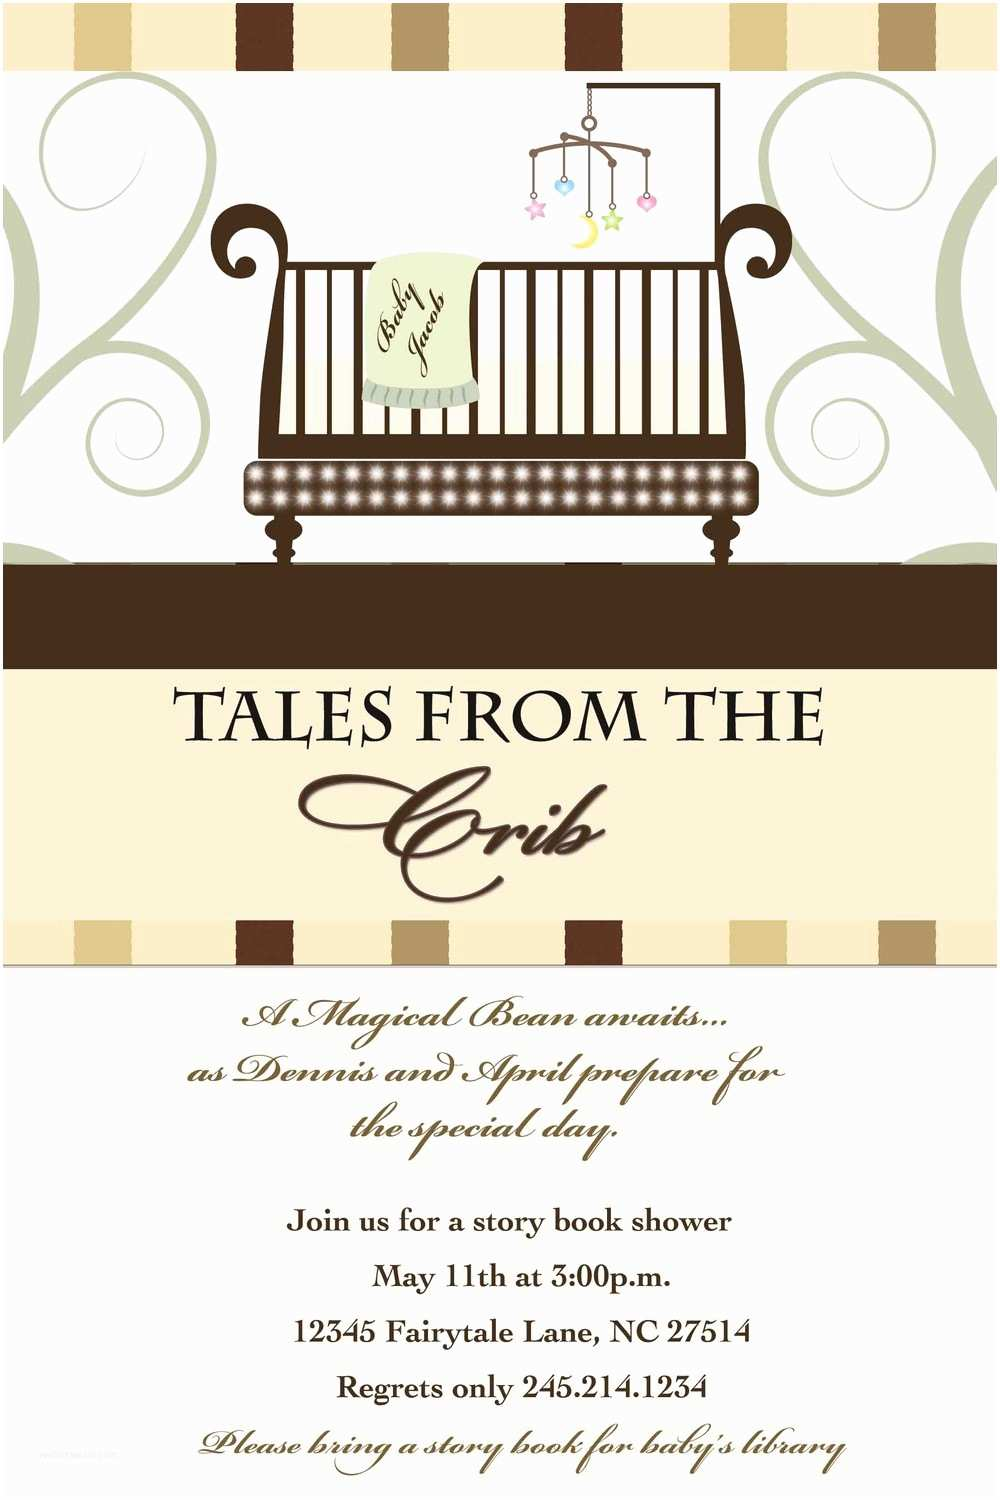 Storybook themed Baby Shower Invitations Story Book Baby Shower Invitation Tales From the Crib